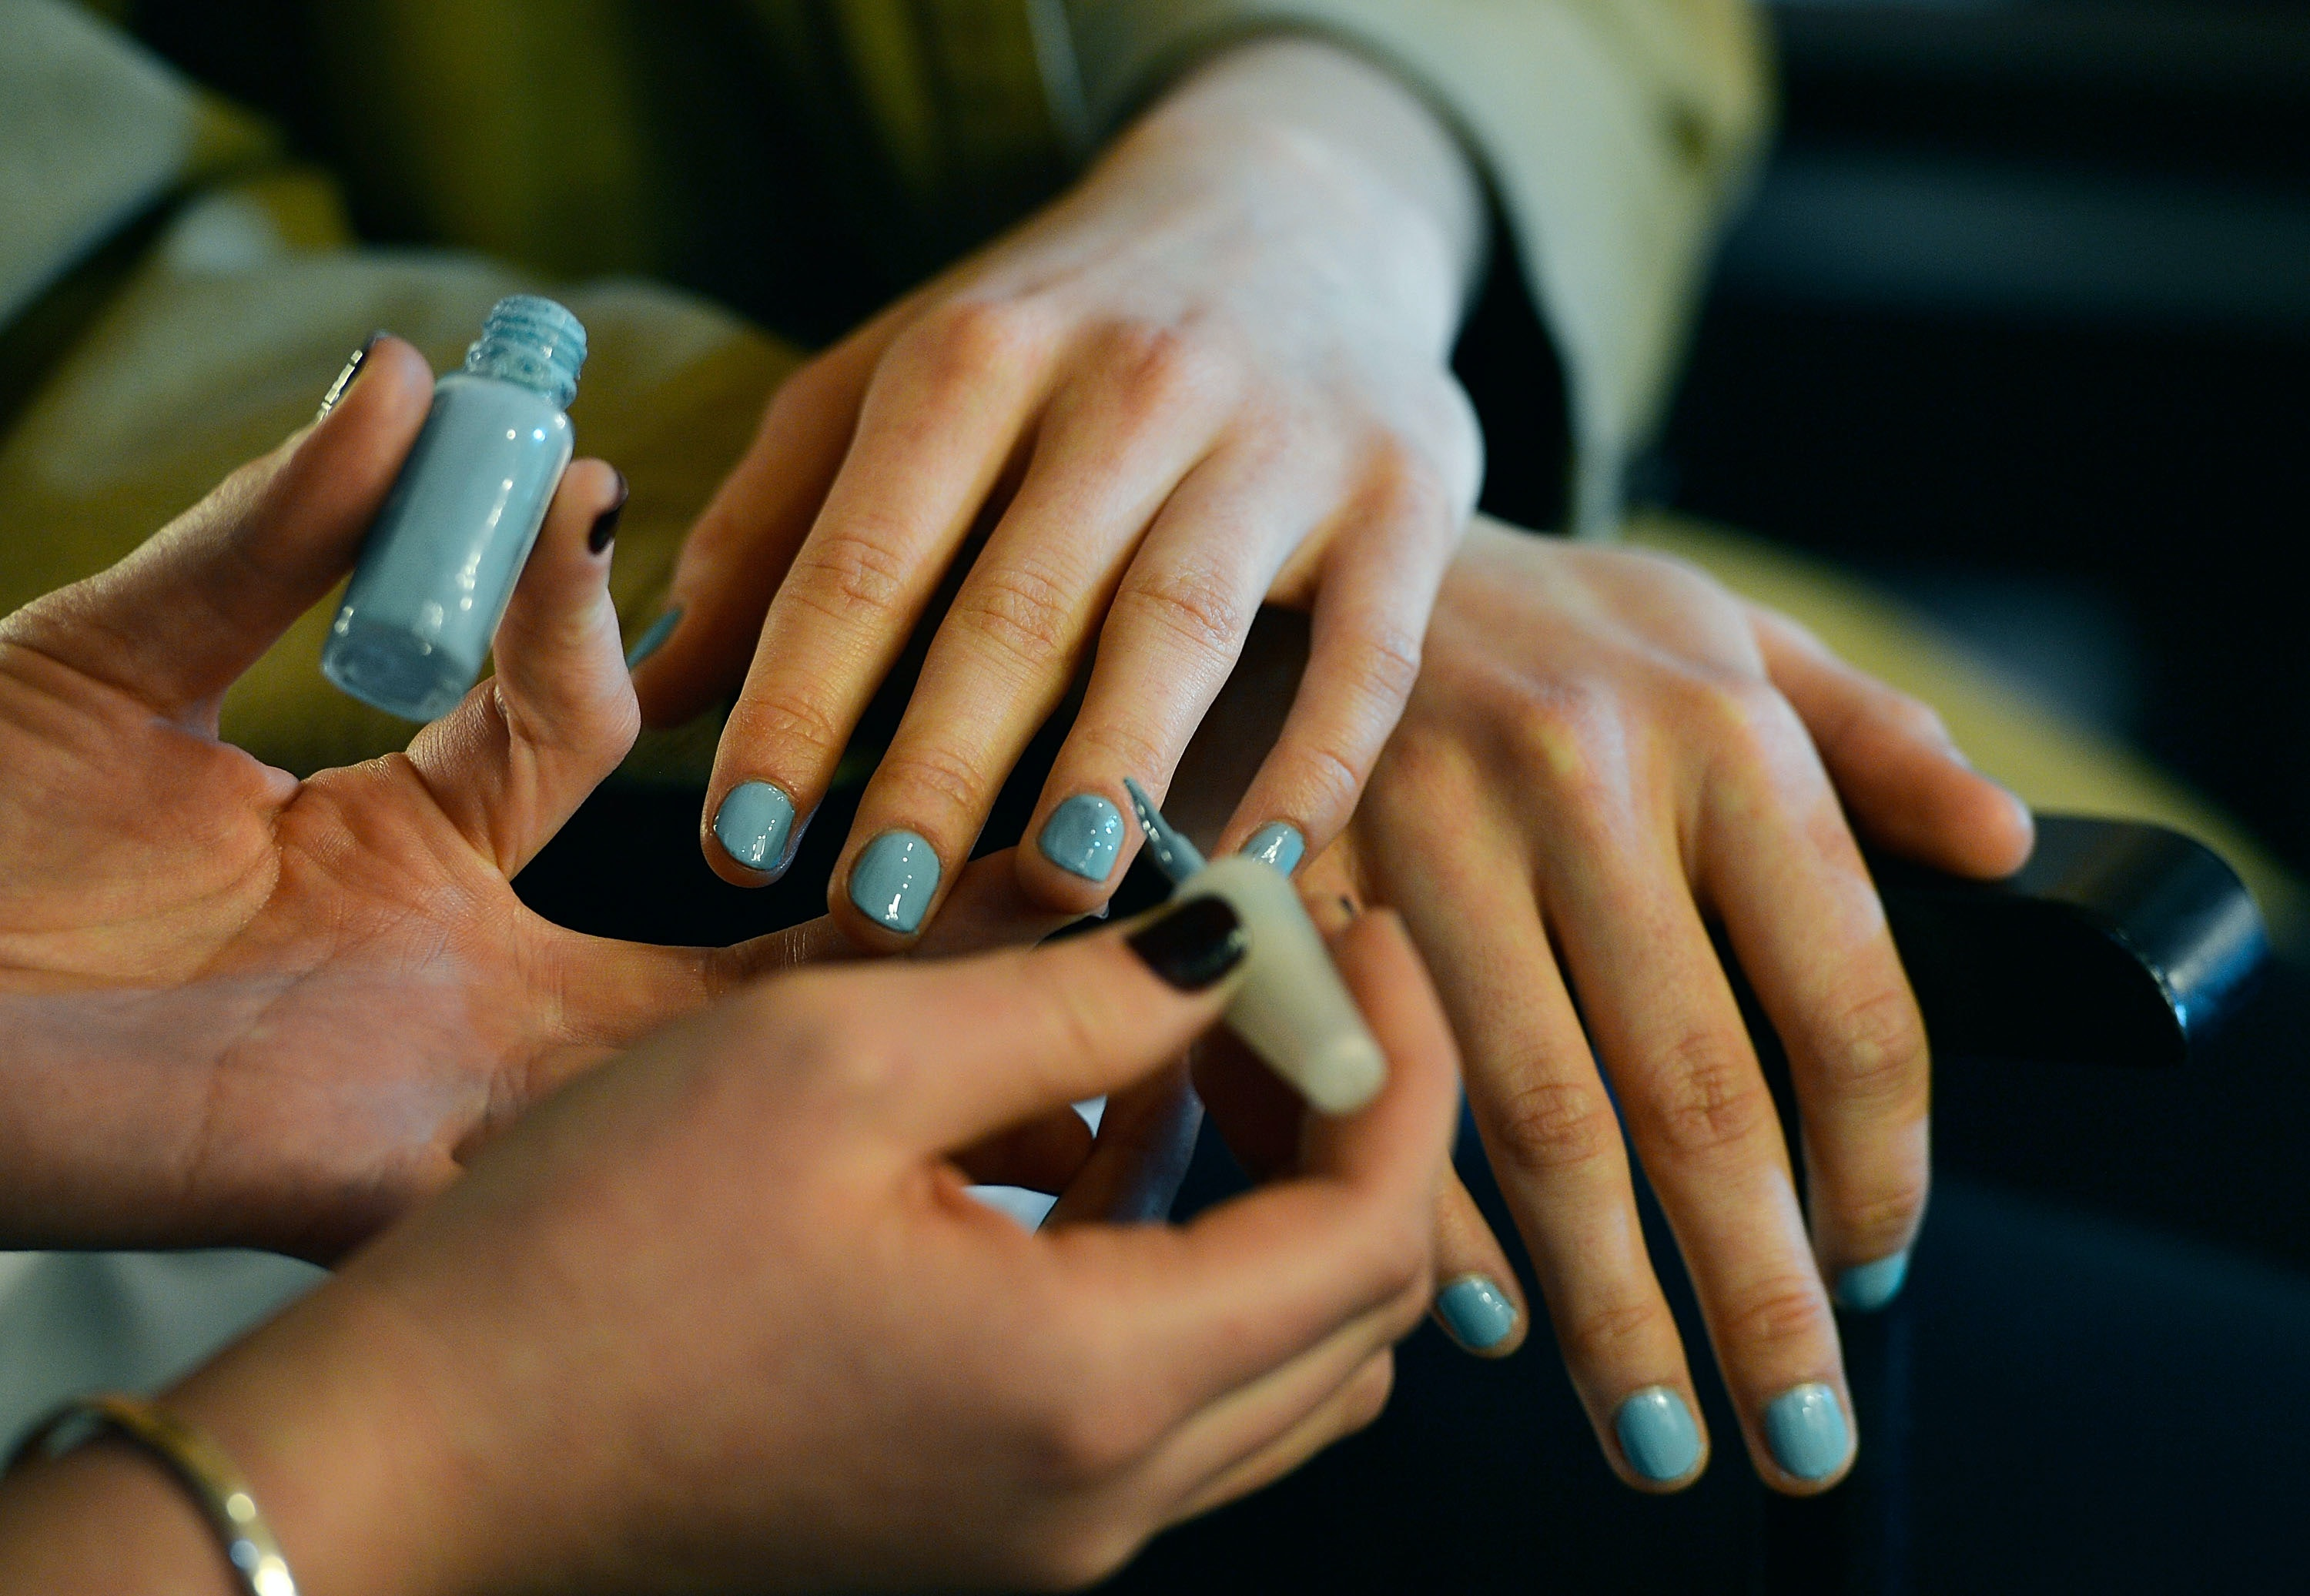 Does Sunscreen Ruin Gel Manicures? What To Know Before Your Next ...